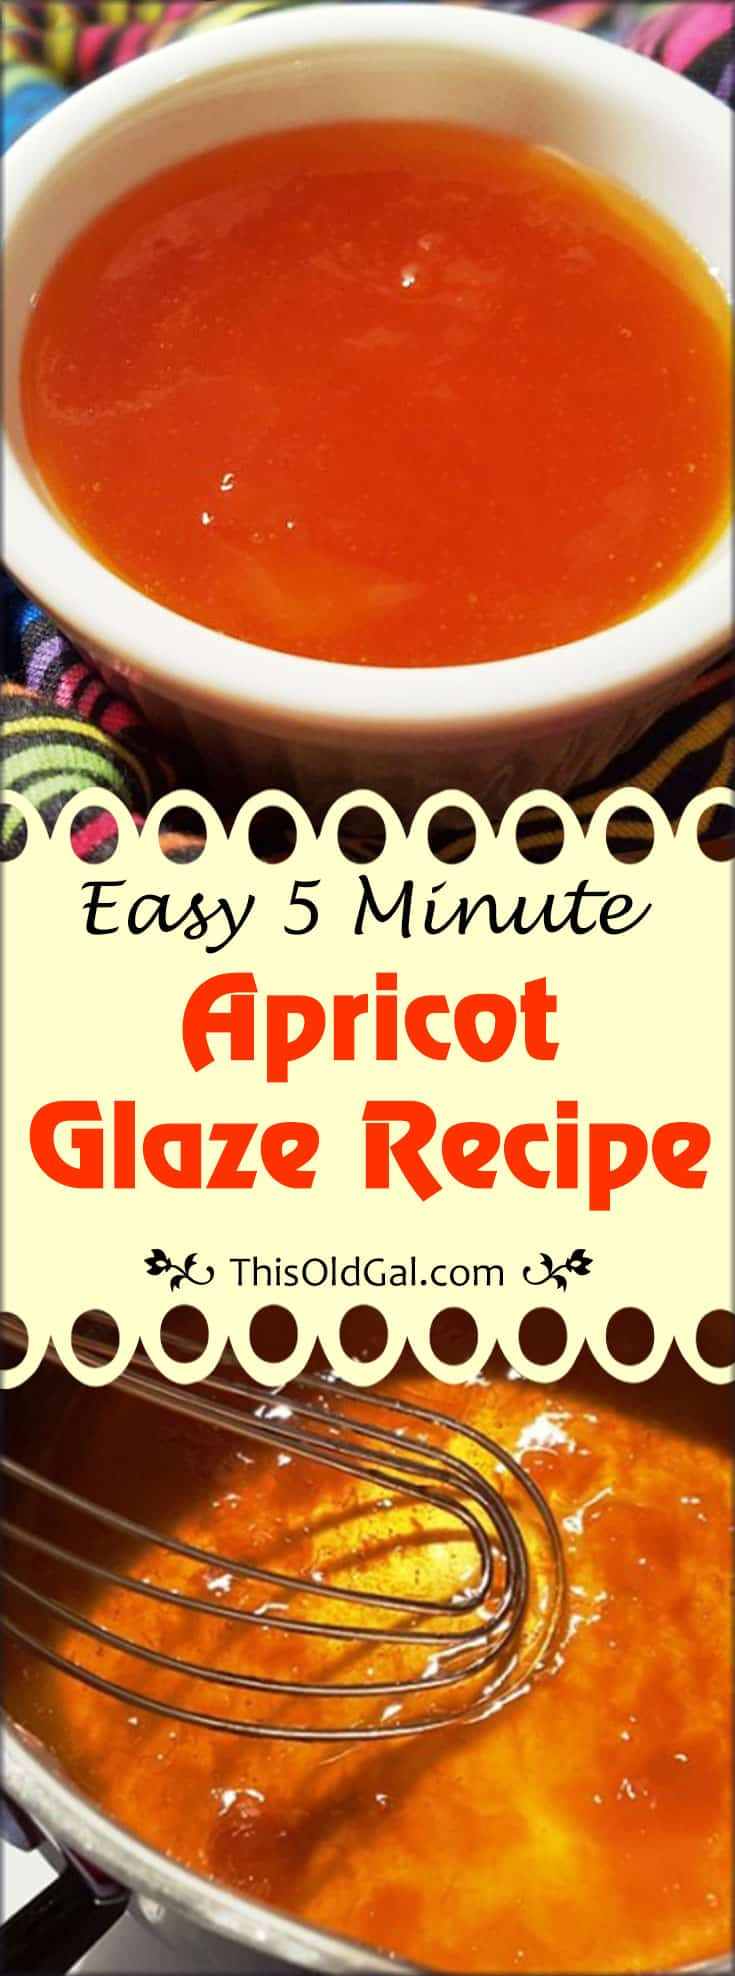 Easy 5 Minute Apricot Glaze Recipe